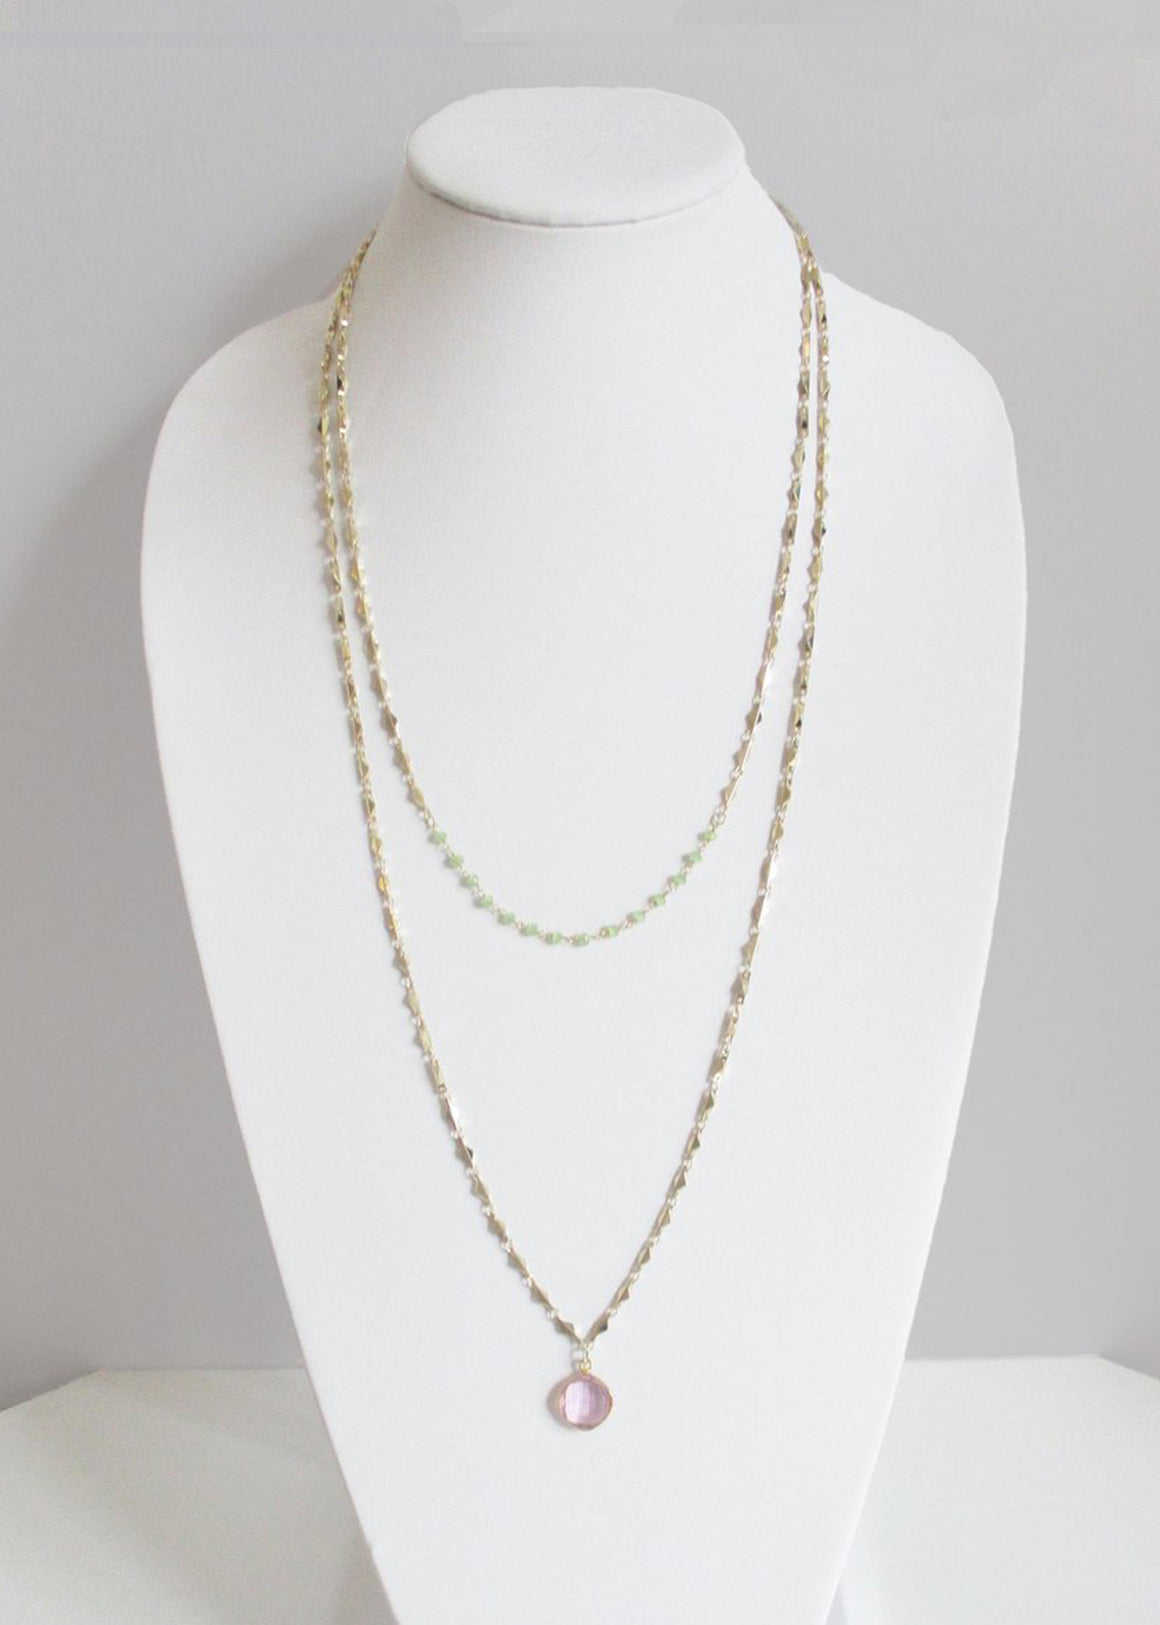 MARNA NECKLACE GREEN CHALCEDONY & ROSE PINK